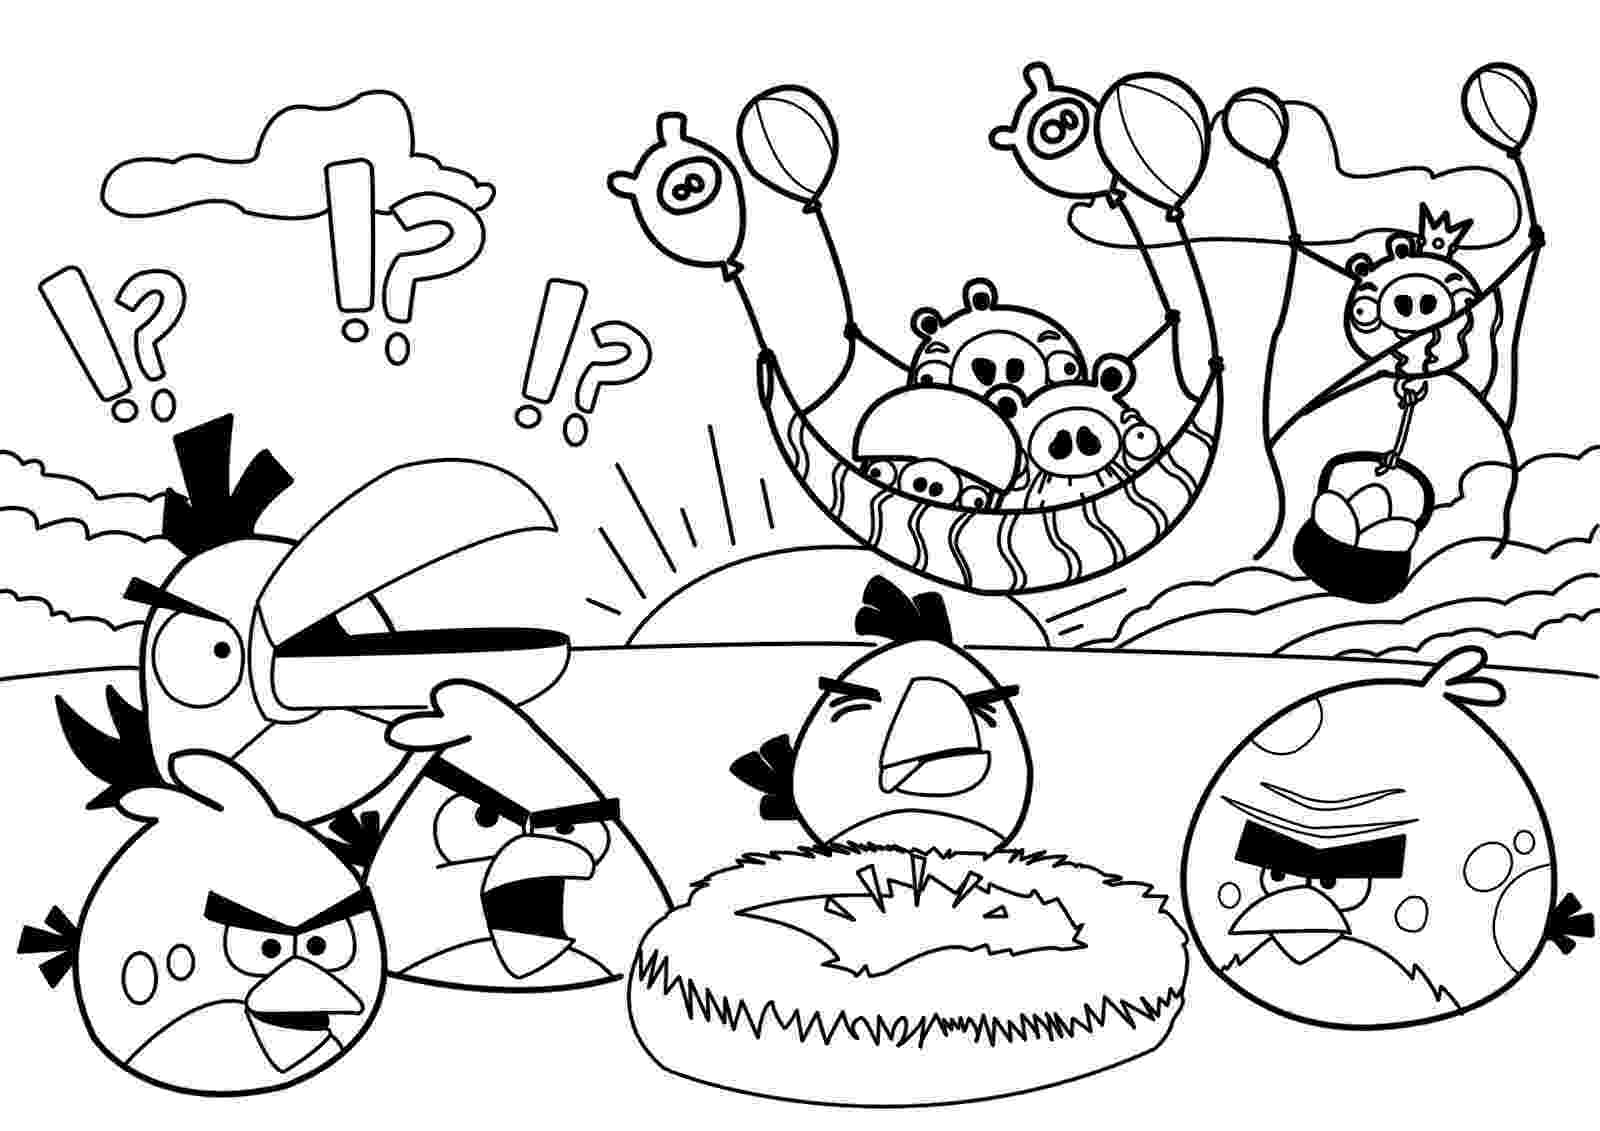 colouring pages angry birds go angry birds free to color for kids angry birds kids birds colouring pages angry go